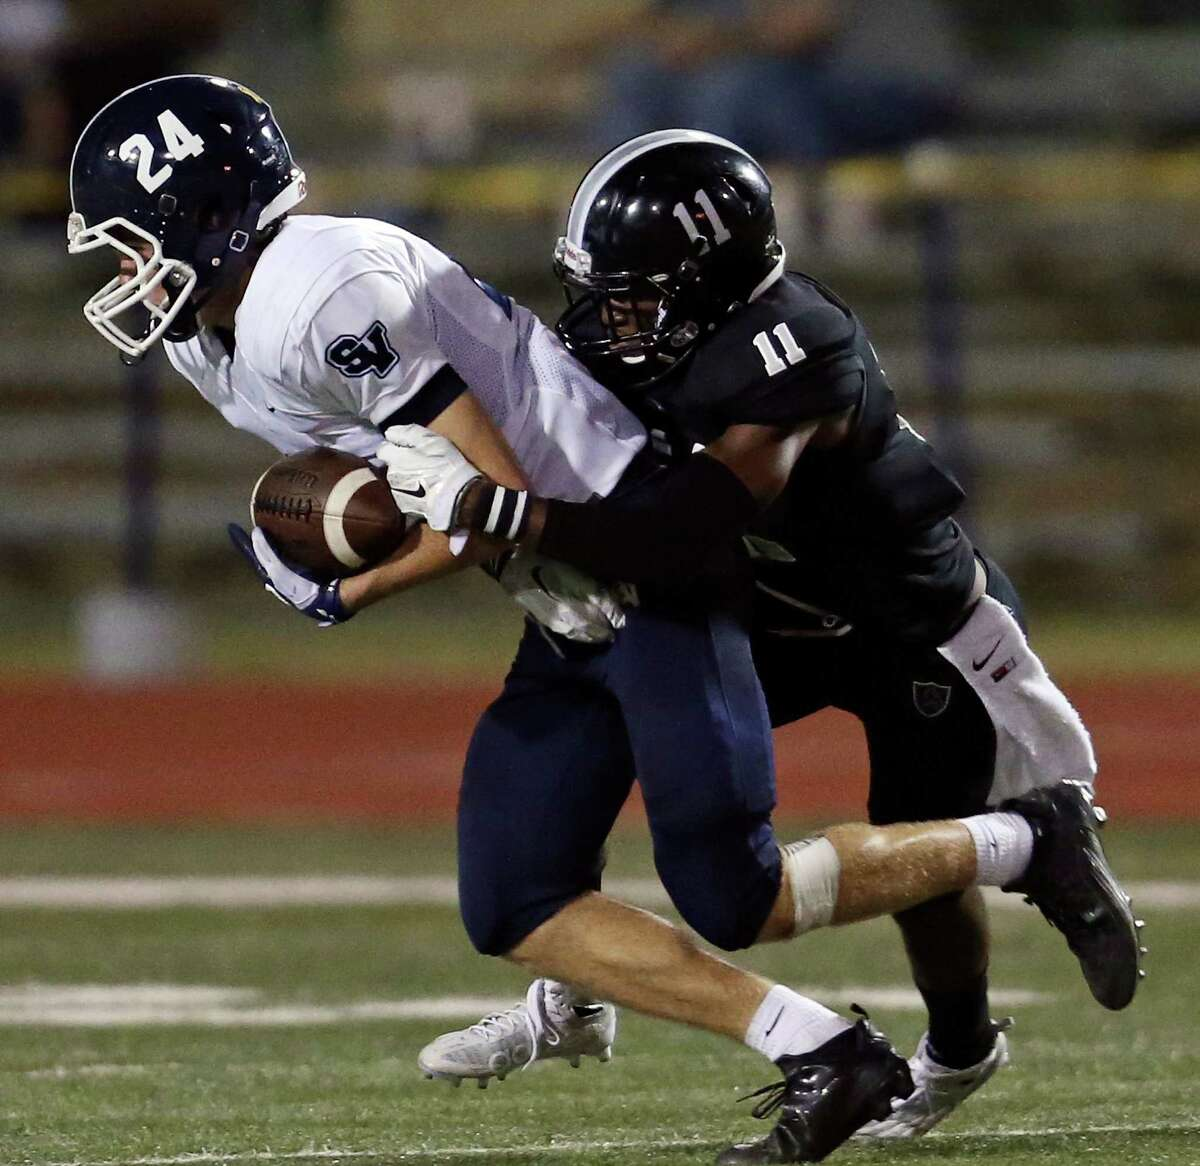 Smithson Valley's Tanner Jennings is tackled by Steele's Tavian Carter during second half action Friday Sept. 25, 2015 at Lehnhoff Stadium. Steele won 42-16.